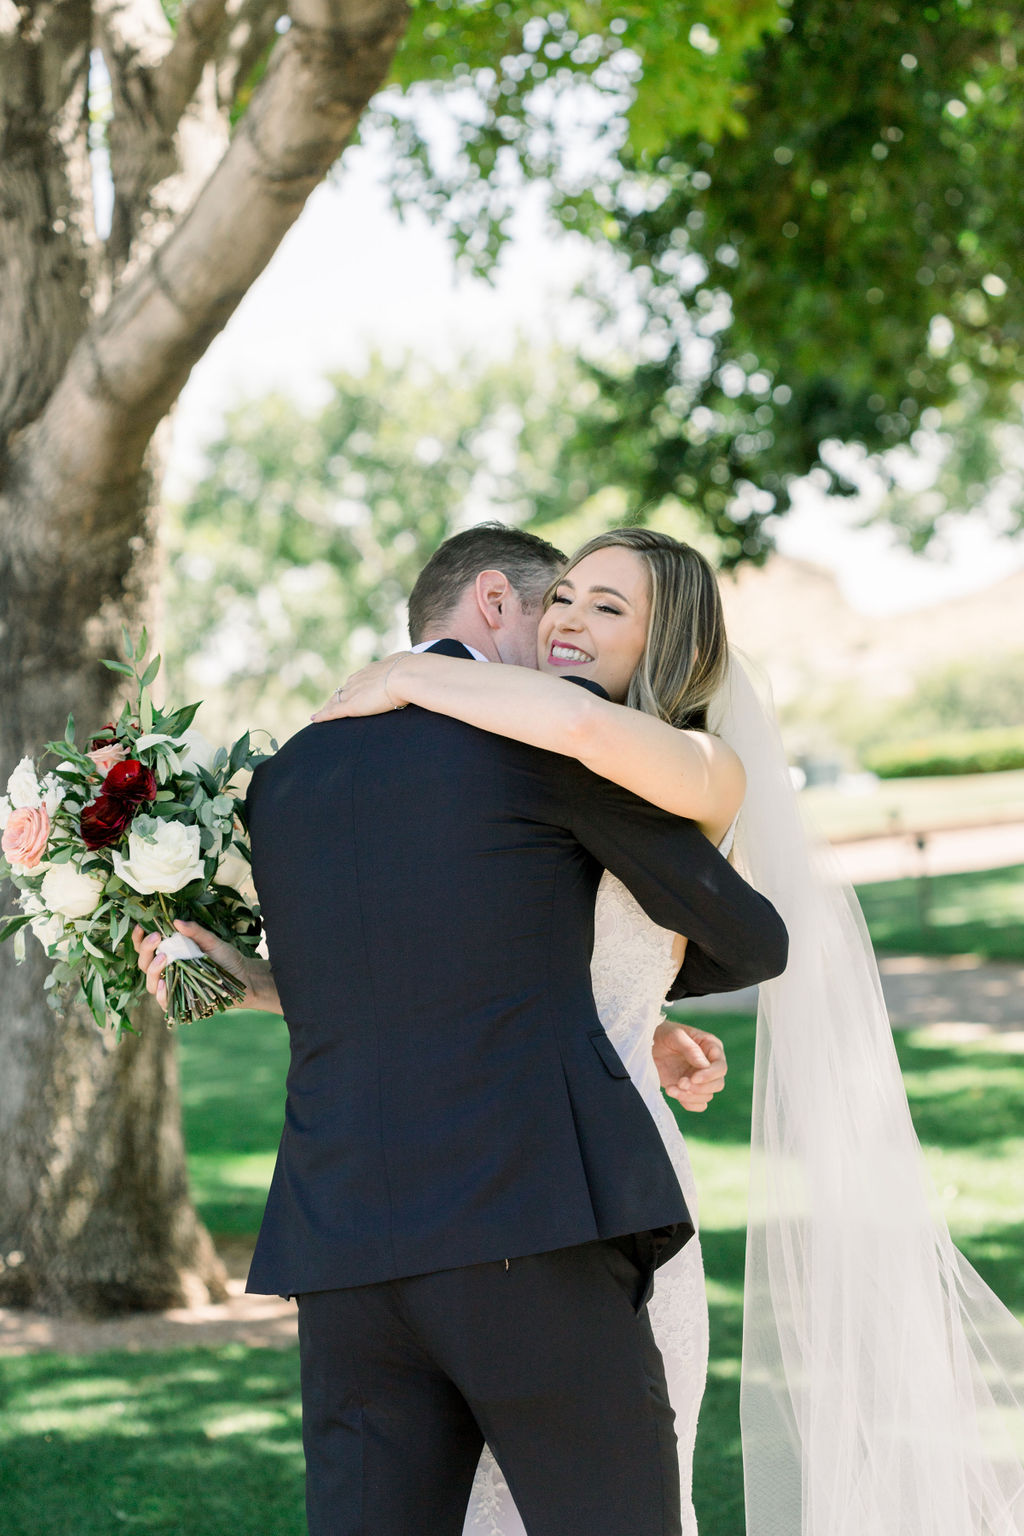 Superstition Mountain Destination Wedding - Arizona Wedding Florist - Phoenix, Scottsdale, Sedona - First Look